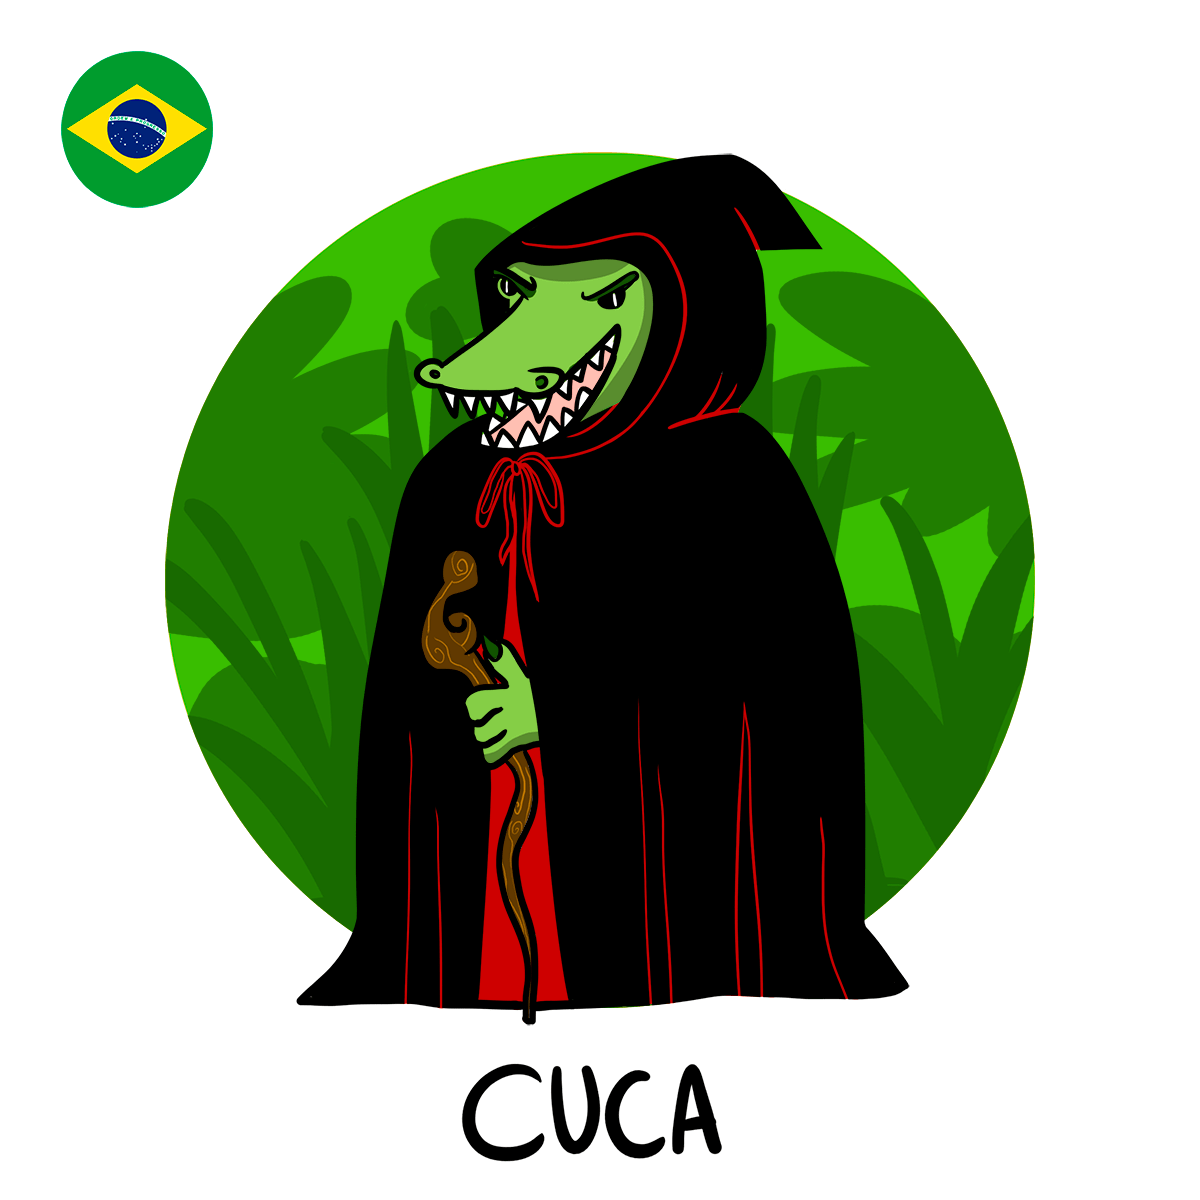 Cuca, illustration of crocodile woman